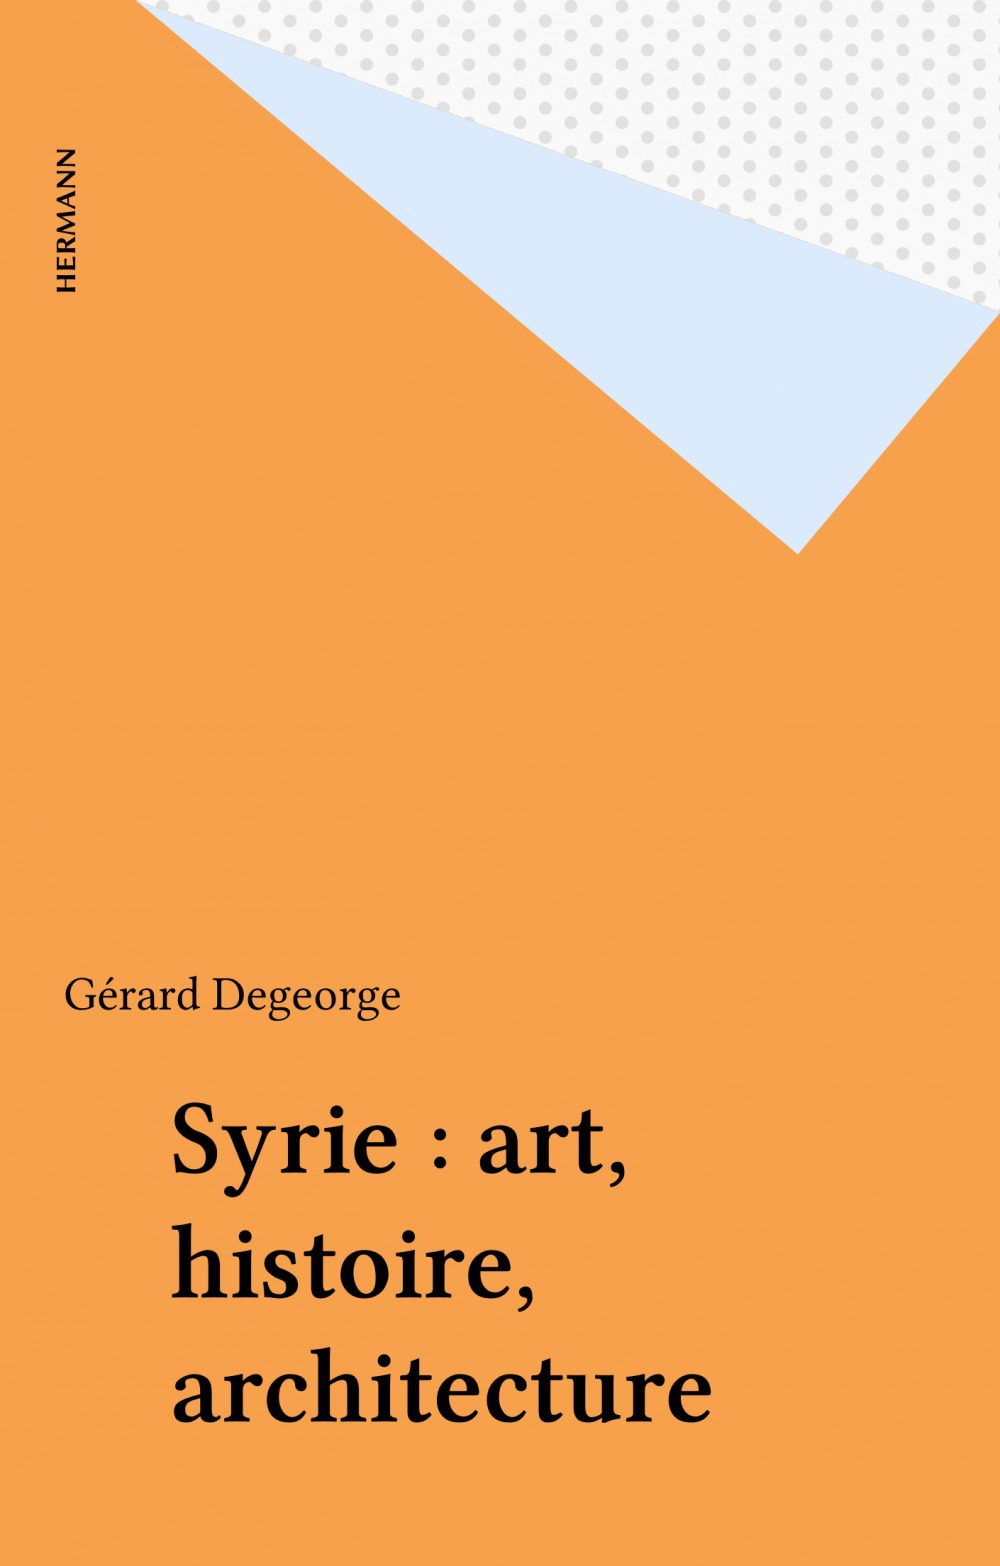 Histoire syrie architecture